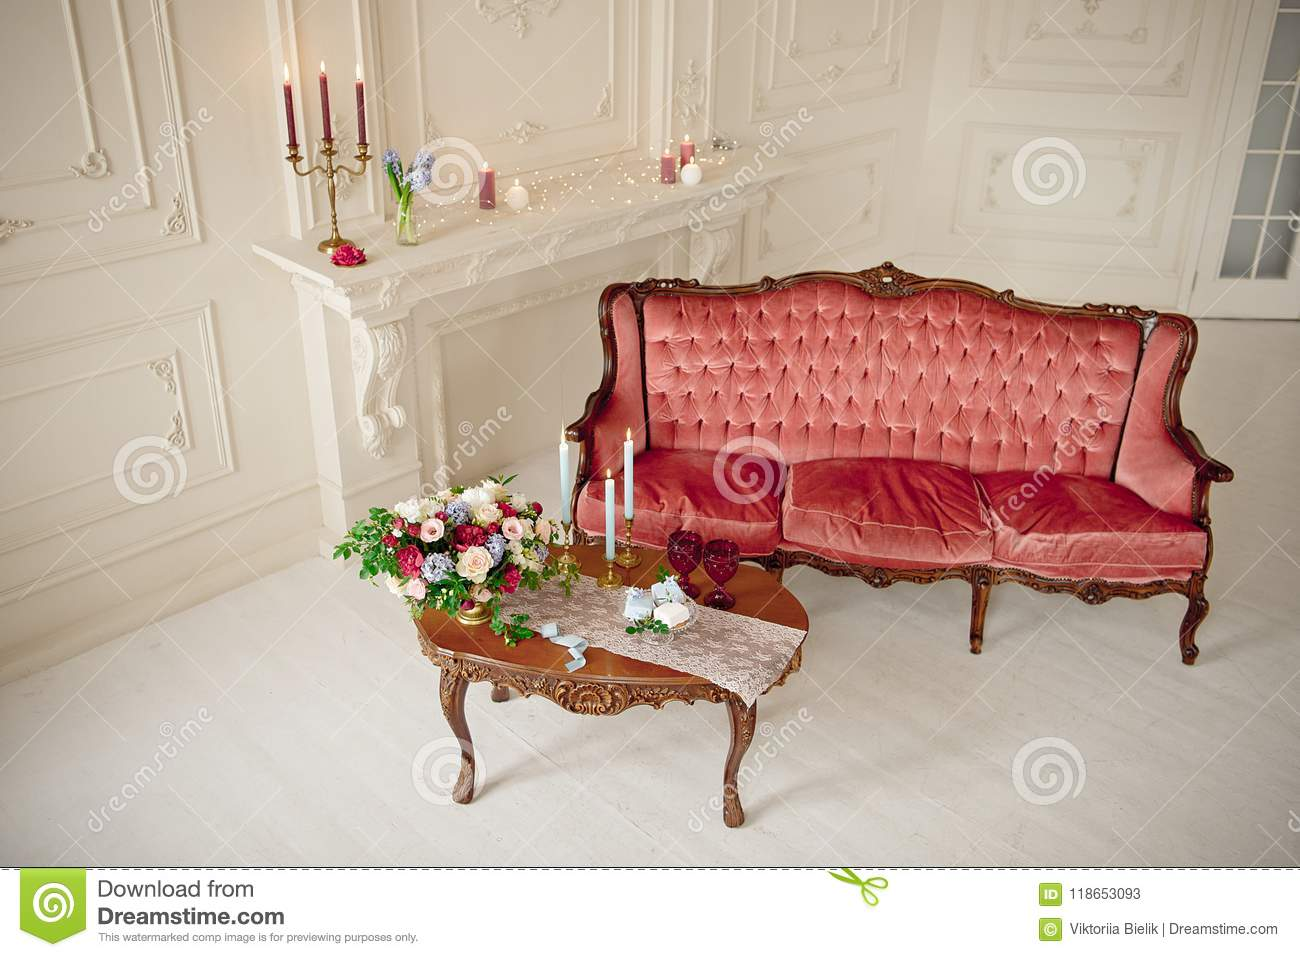 Outstanding Baroque Style Interior With Red Luxury Sofa And Table Stock Machost Co Dining Chair Design Ideas Machostcouk